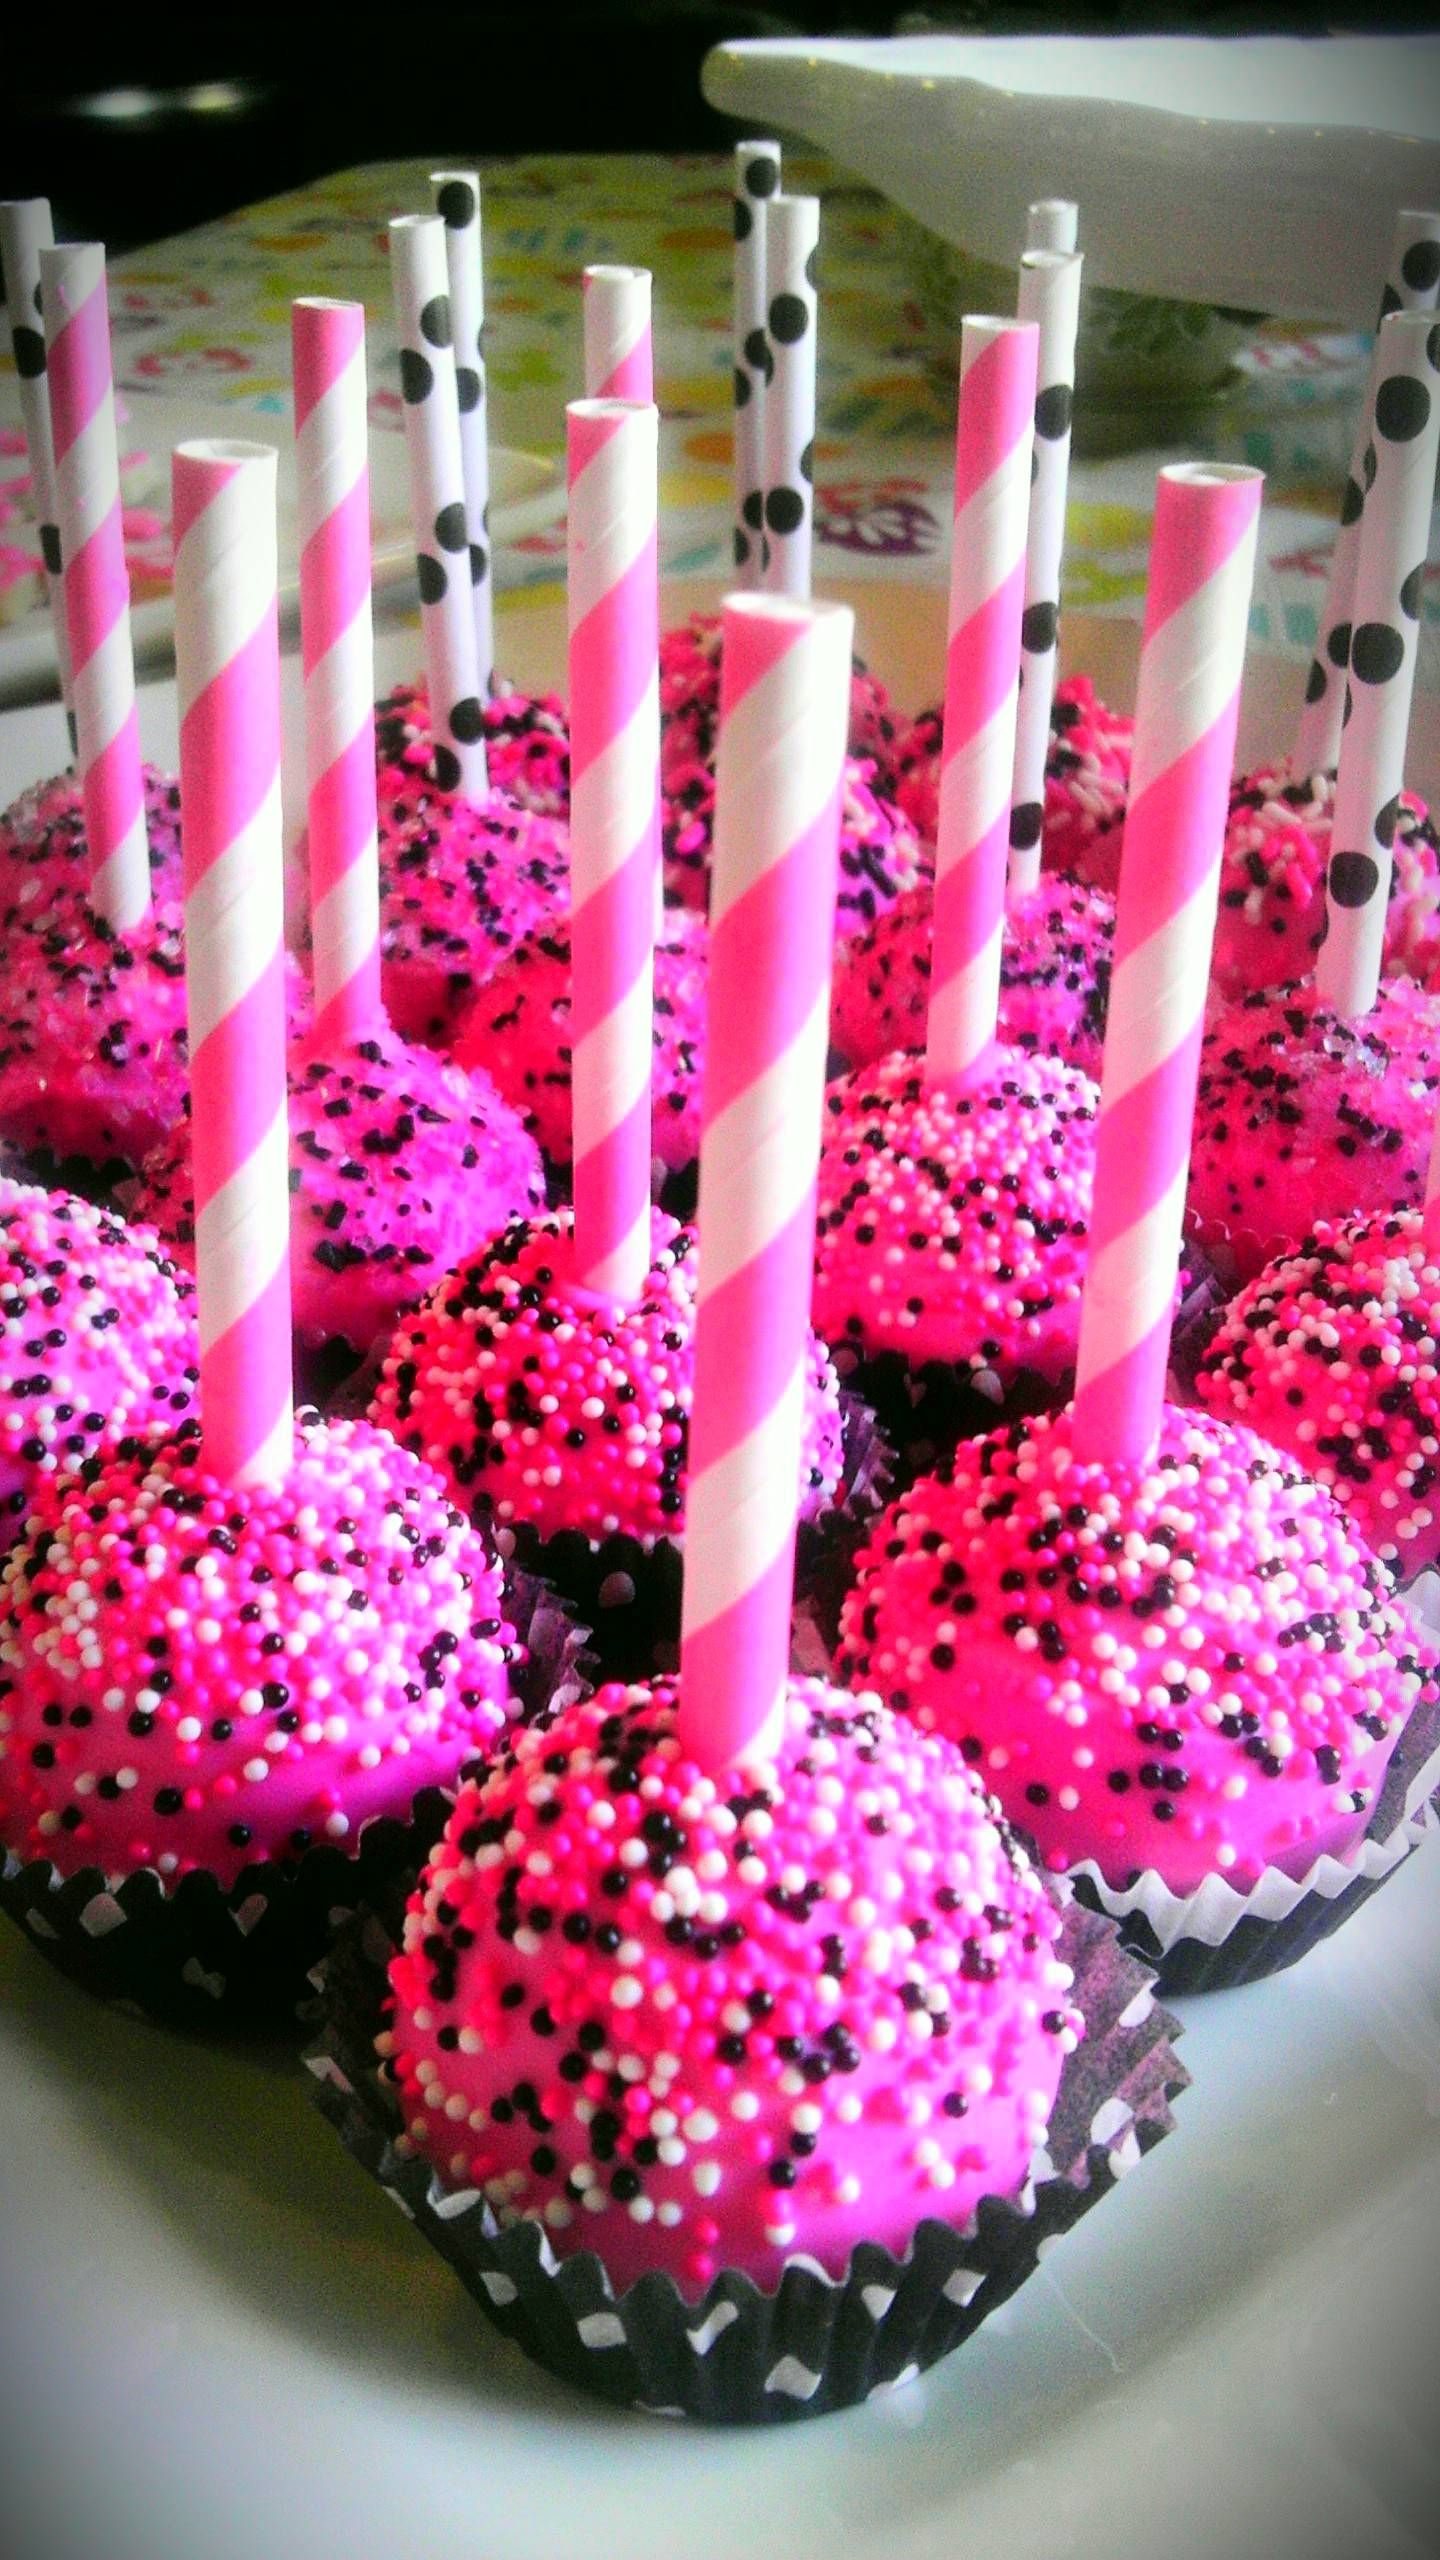 Blickfang Pinke Küche Das Beste Von My Strawberry Cake Pops With Striped Hot